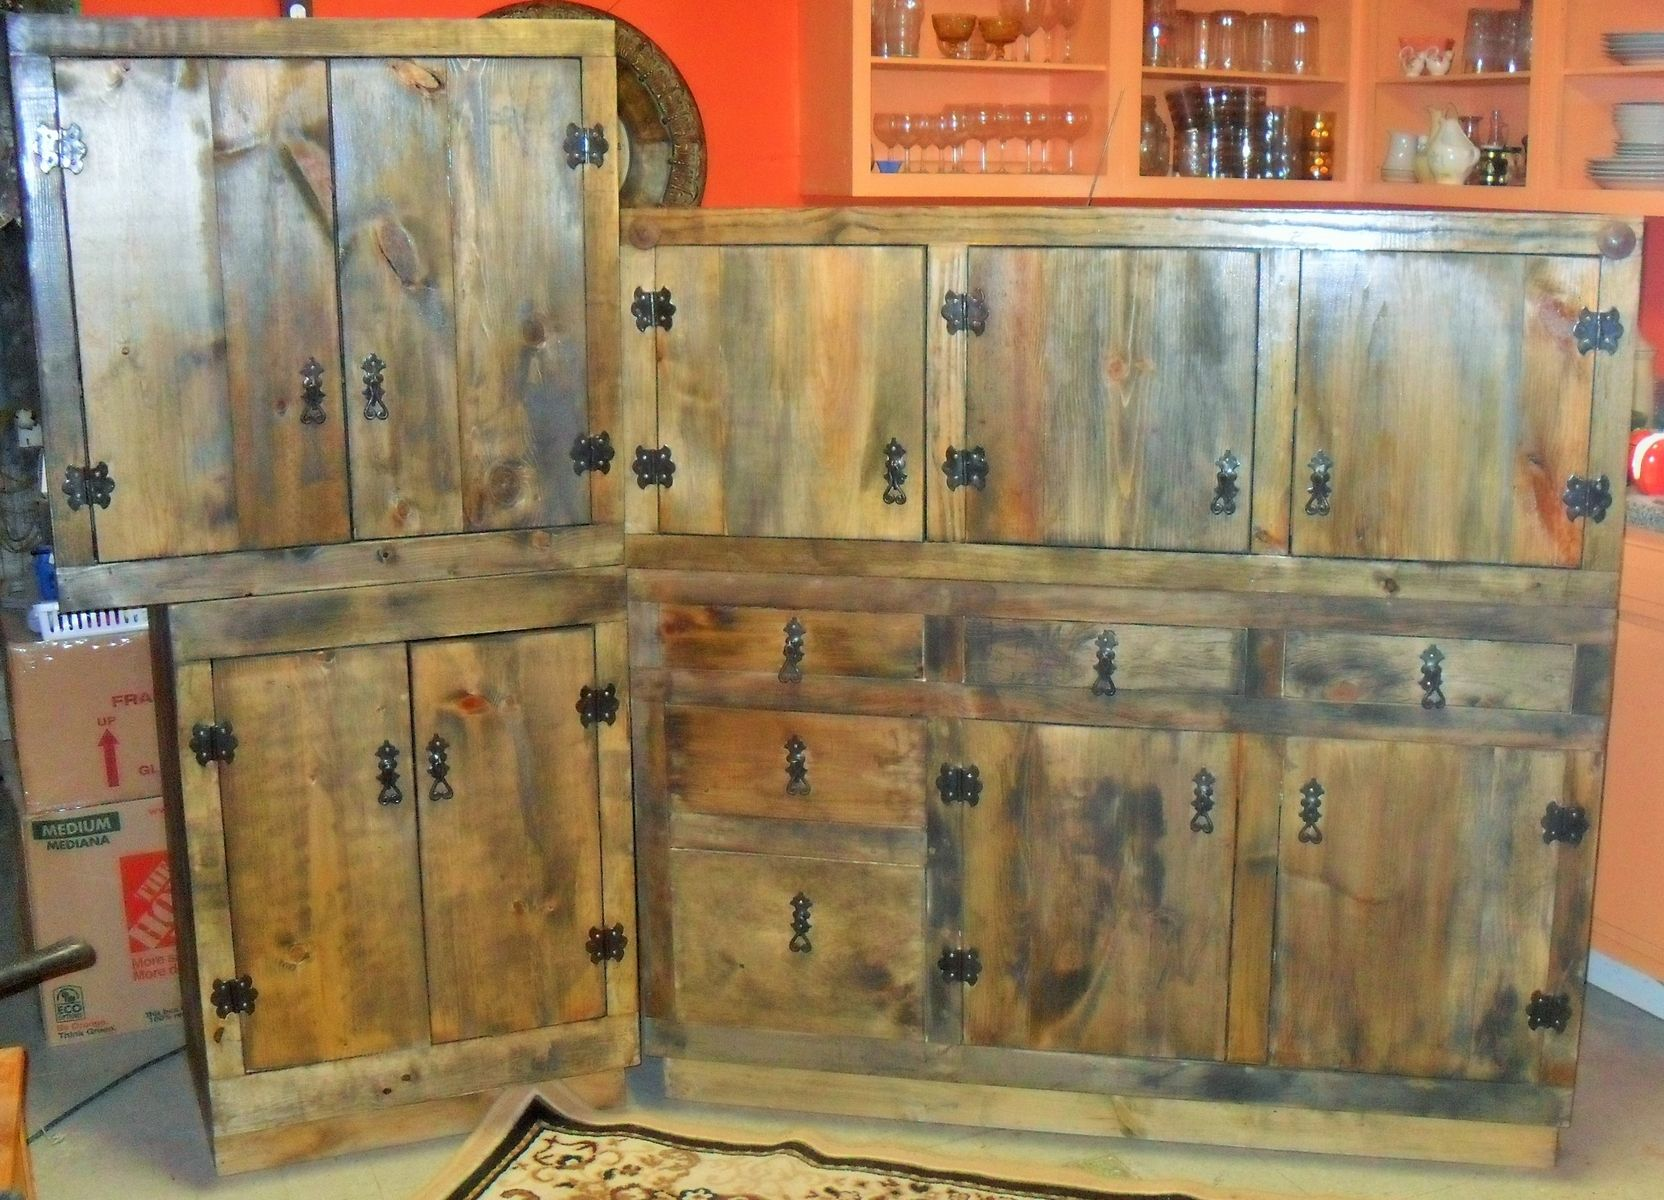 Hand made rustic kitchen cabinets by the bunk house studio for Rustic kitchen cabinets